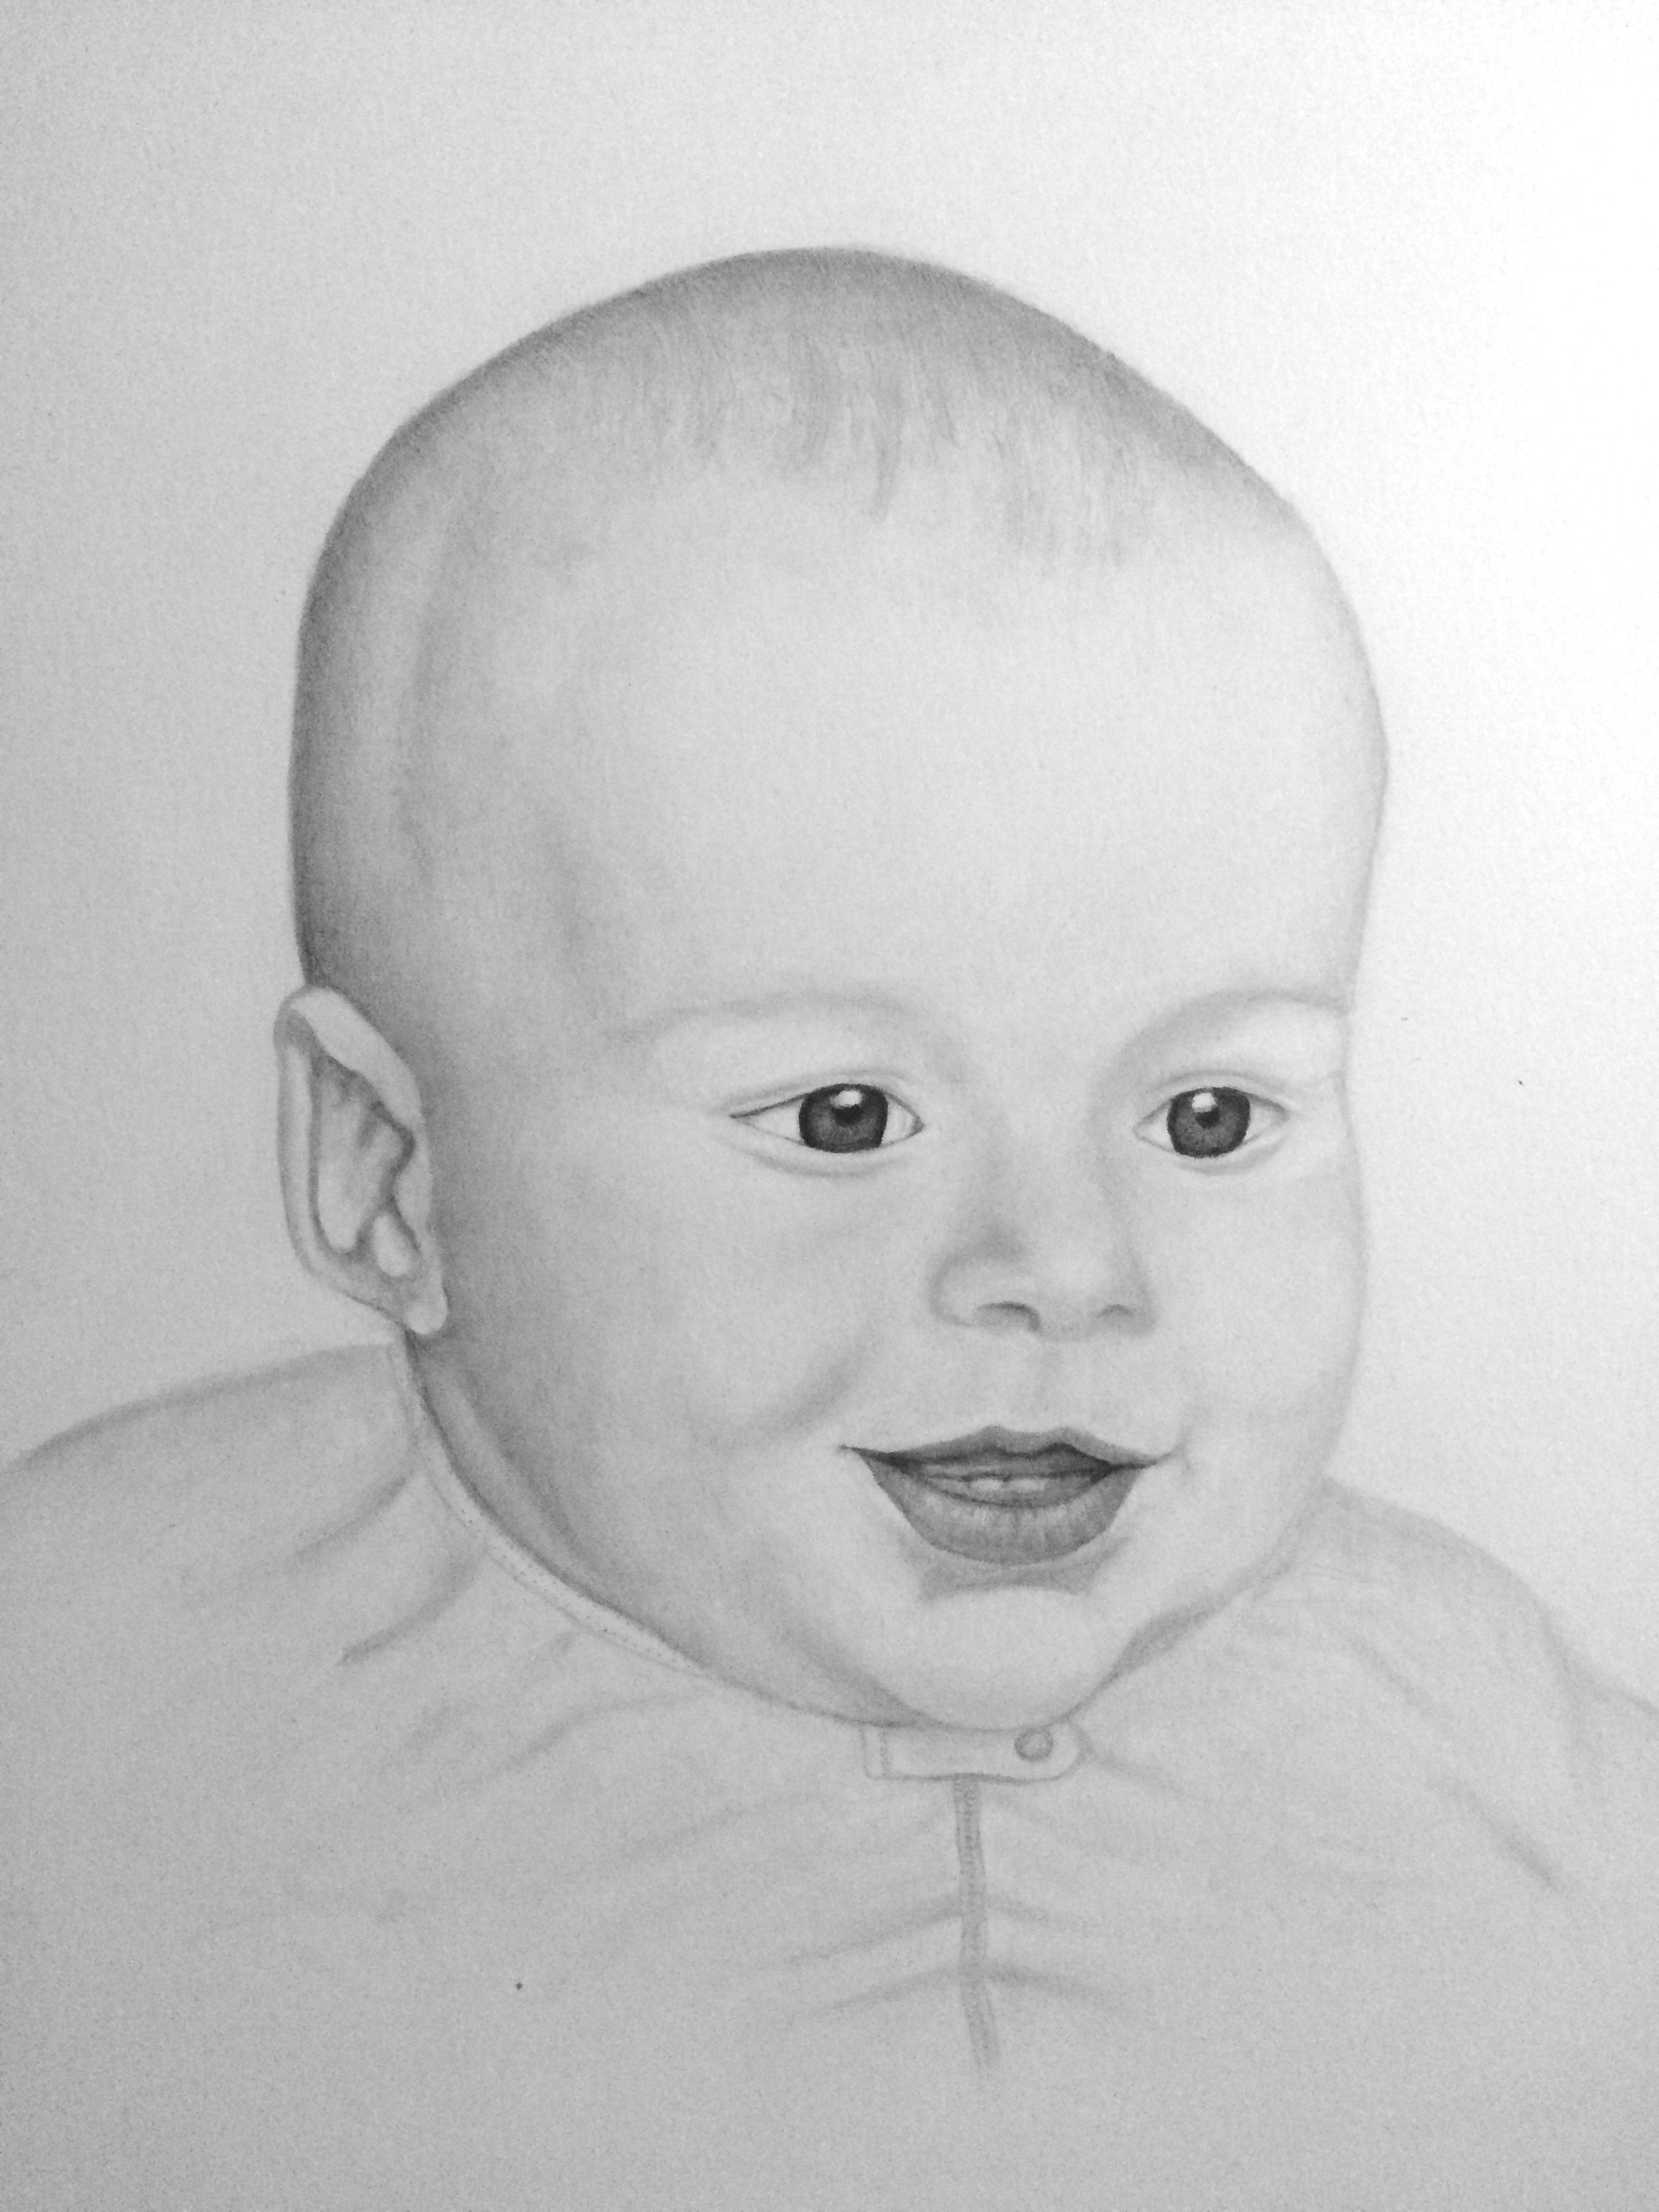 A graphite pencil drawing of a 4 month old baby boy